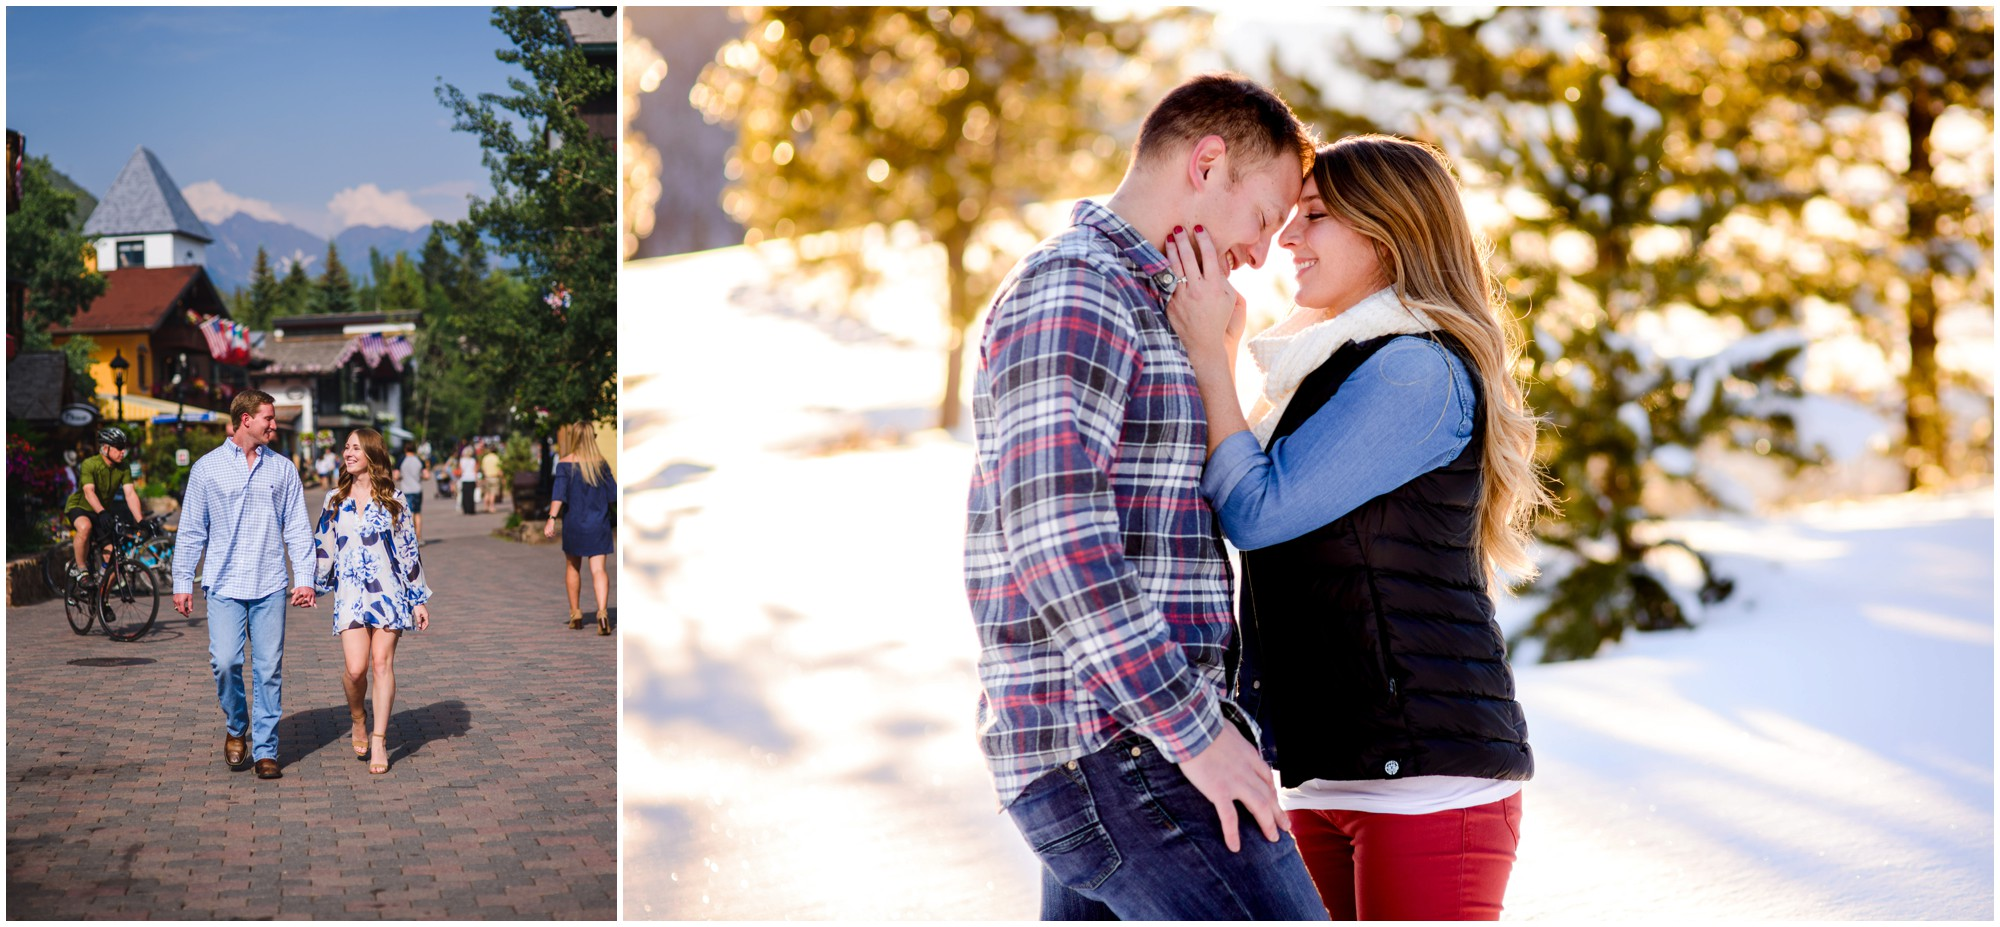 88-Vail-proposal-engagement-photography.jpg